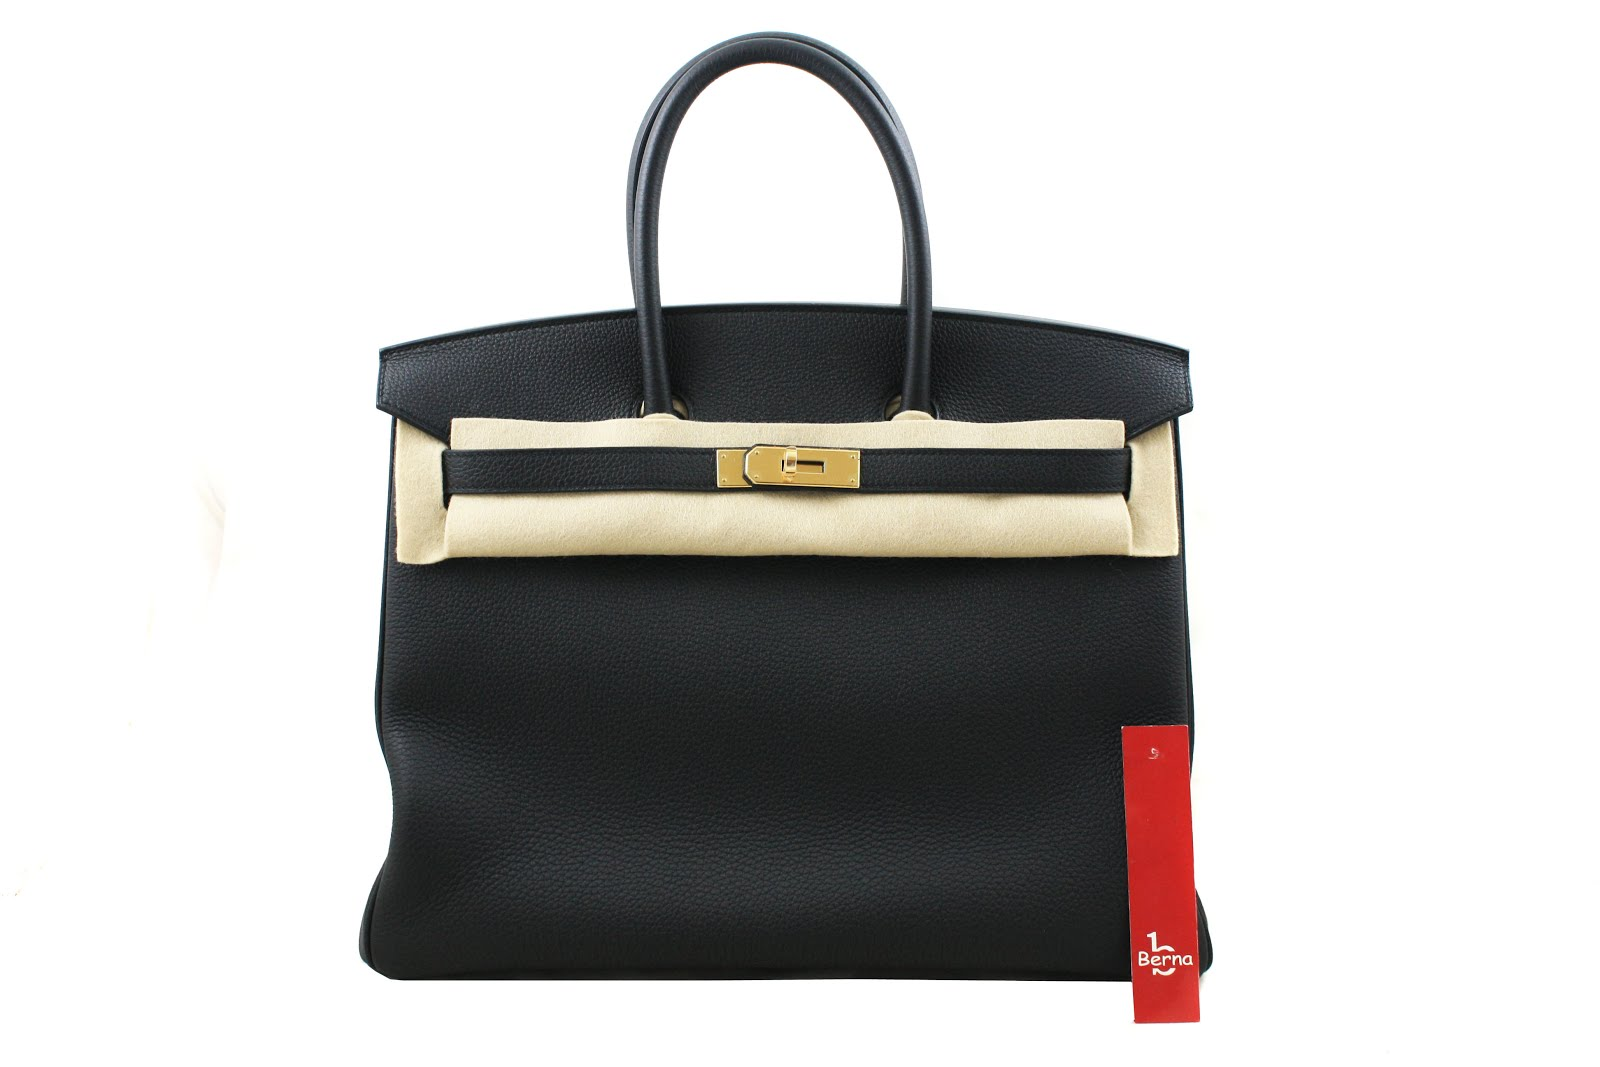 birkin bag look for less - AUTHENTIC NEW OR PRE-OWNED LUXURY:ROLEX,HERMES,CHANEL,LOUIS ...